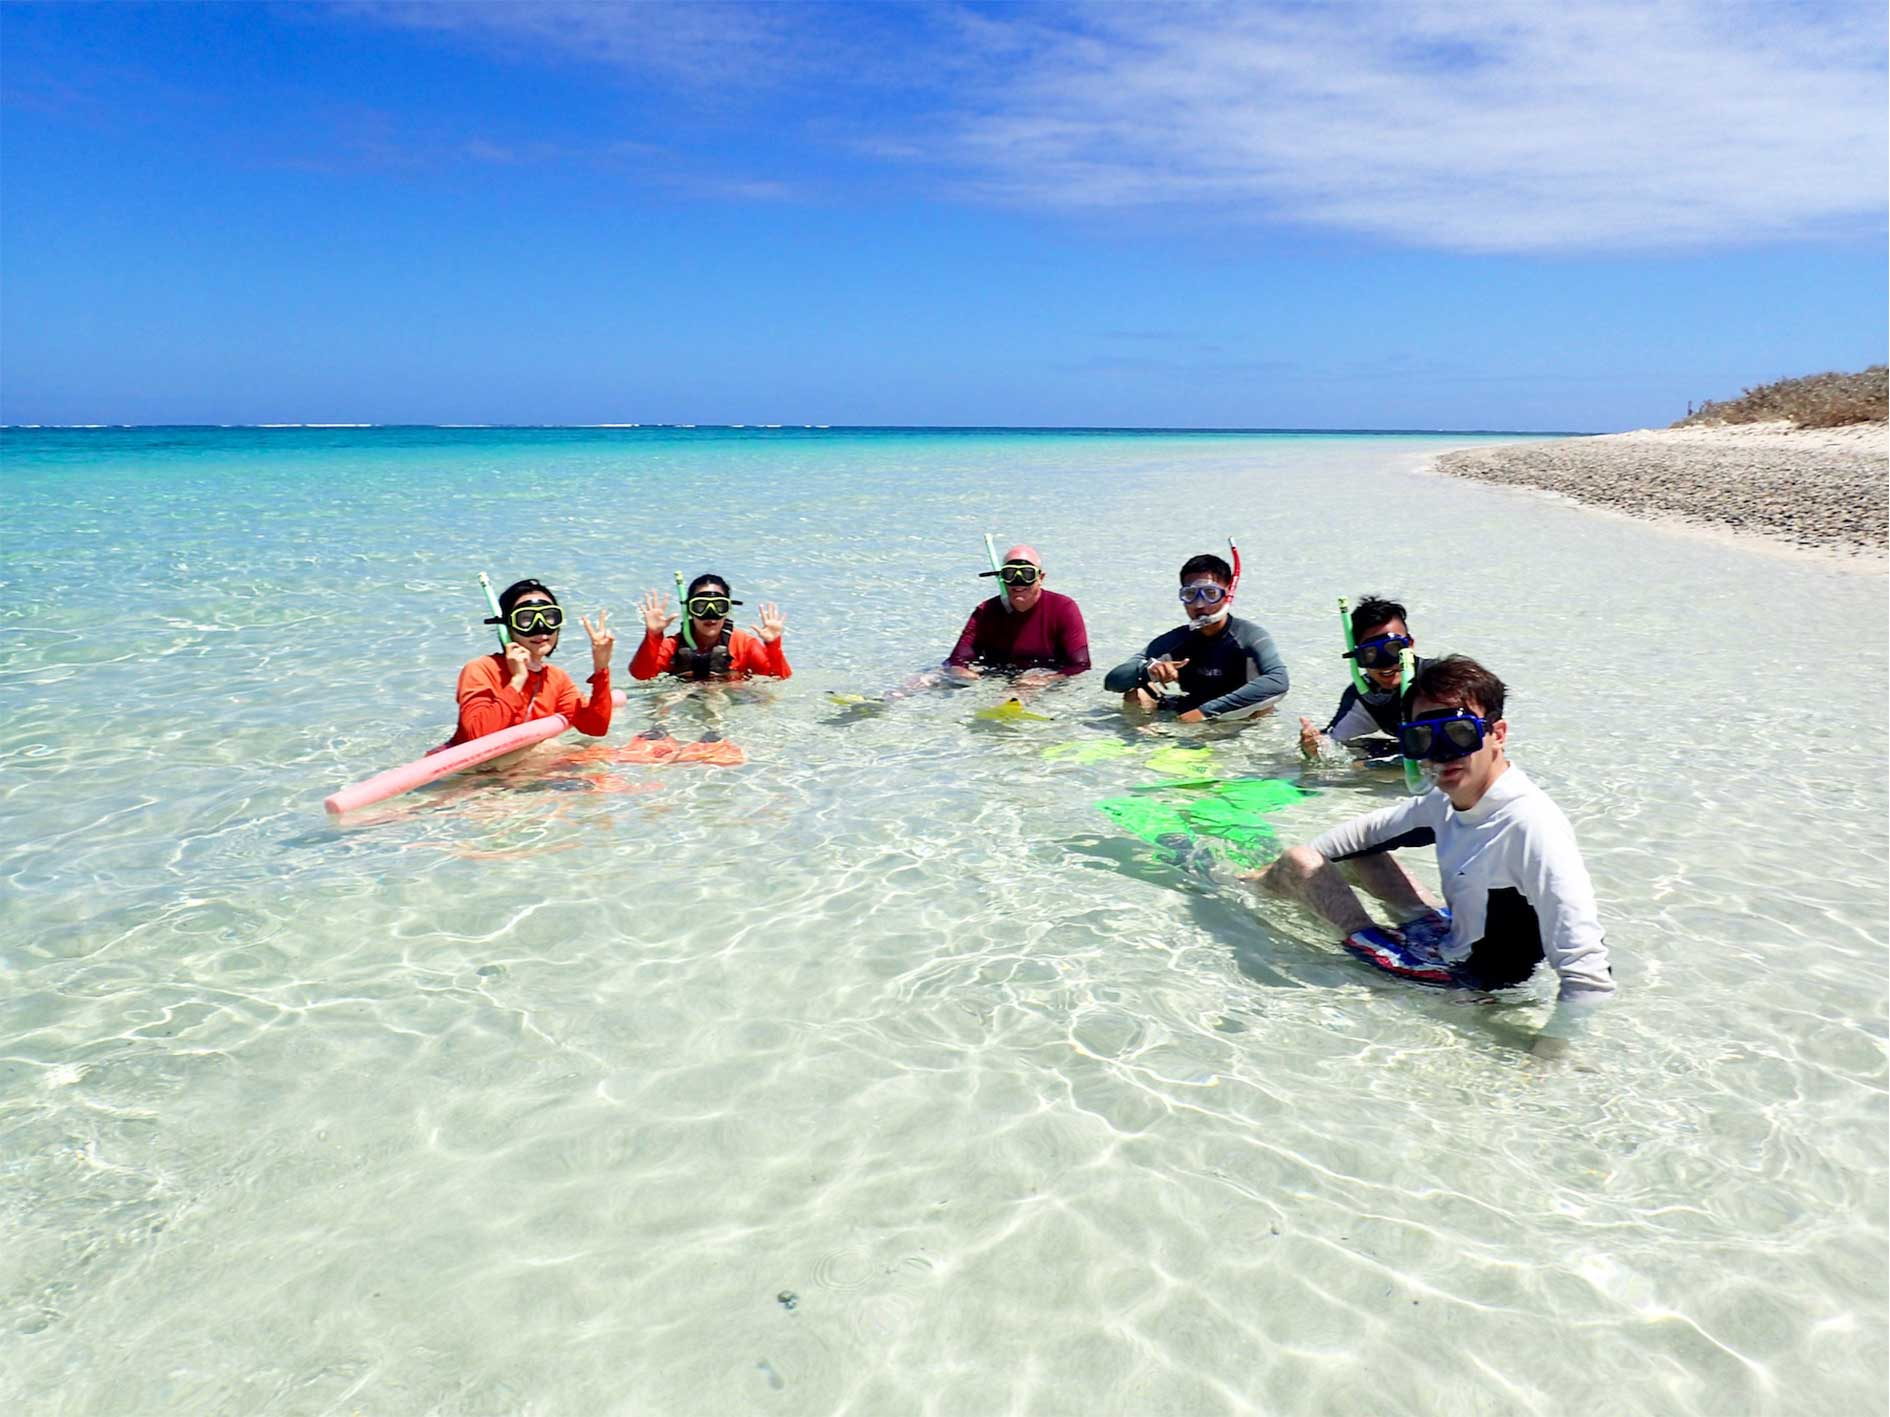 Turquoise Bay Snorkel Tour, Snorkel Ningaloo Reef, Guided Snorkel, Eco Tour, Ningaloo Reef, Turquoise Bay, Exmouth, Western Australia, Exmouth Adventure Co, Cape Range National Park, Gift Vouchers, Gift Vouchers Exmouth, Gift Vouchers Ningaloo, Experience Gifting